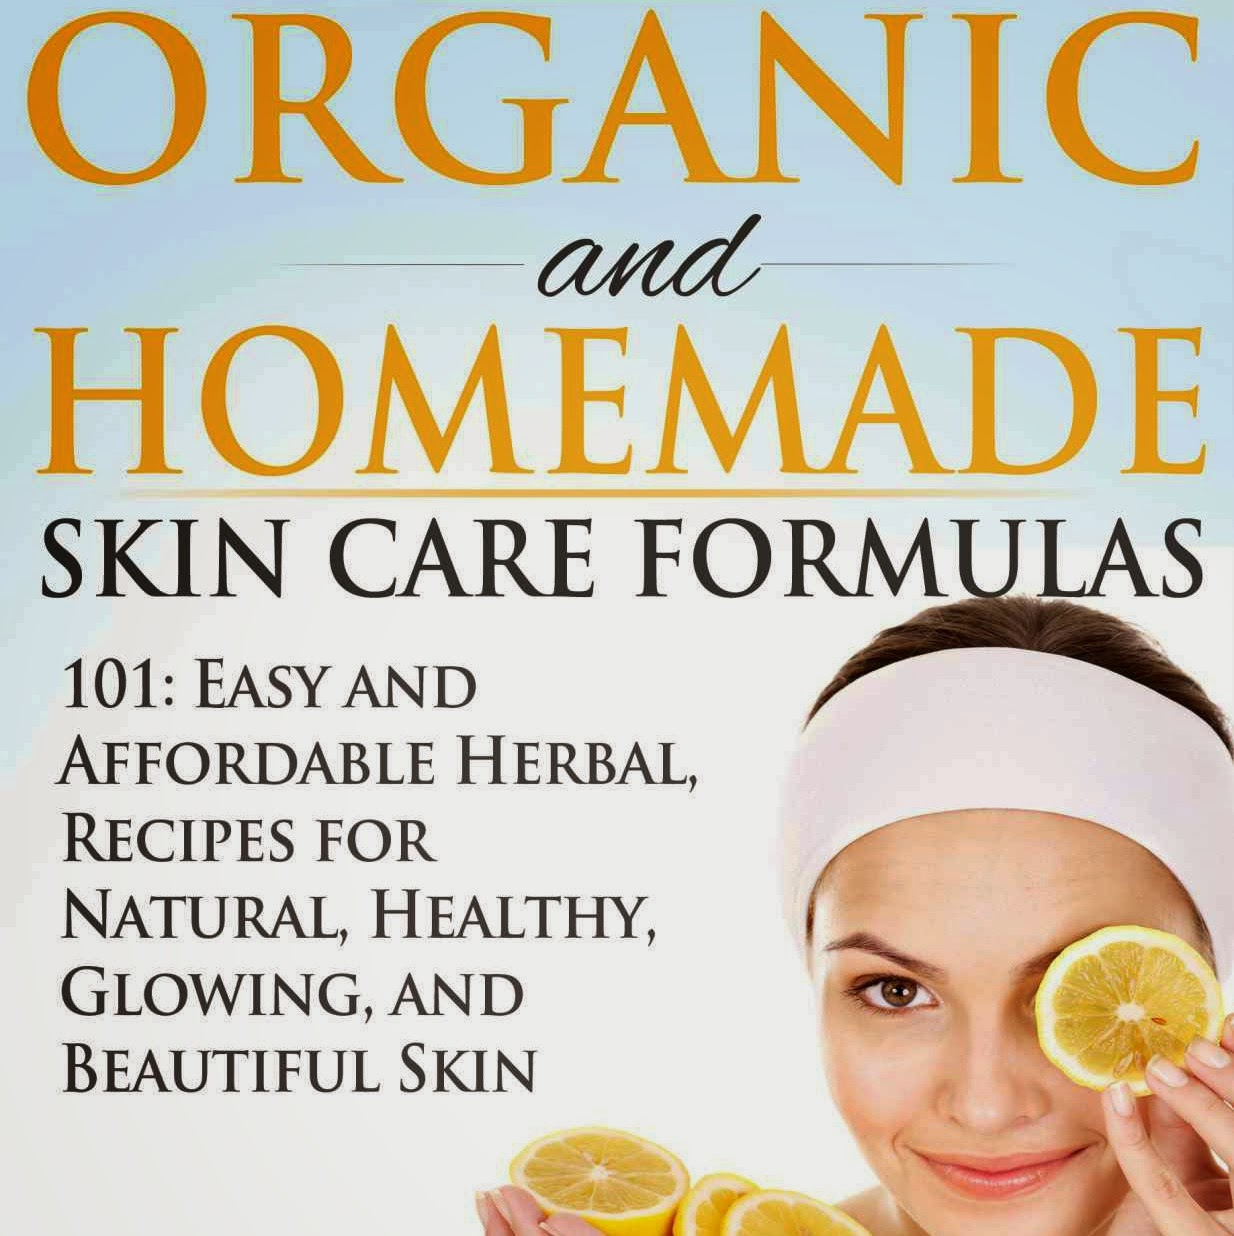 Homemade Organic Skin Body Care Easy Diy Recipes And: Frugal Mom And Wife: FREE 101 Organic And Homemade Skin